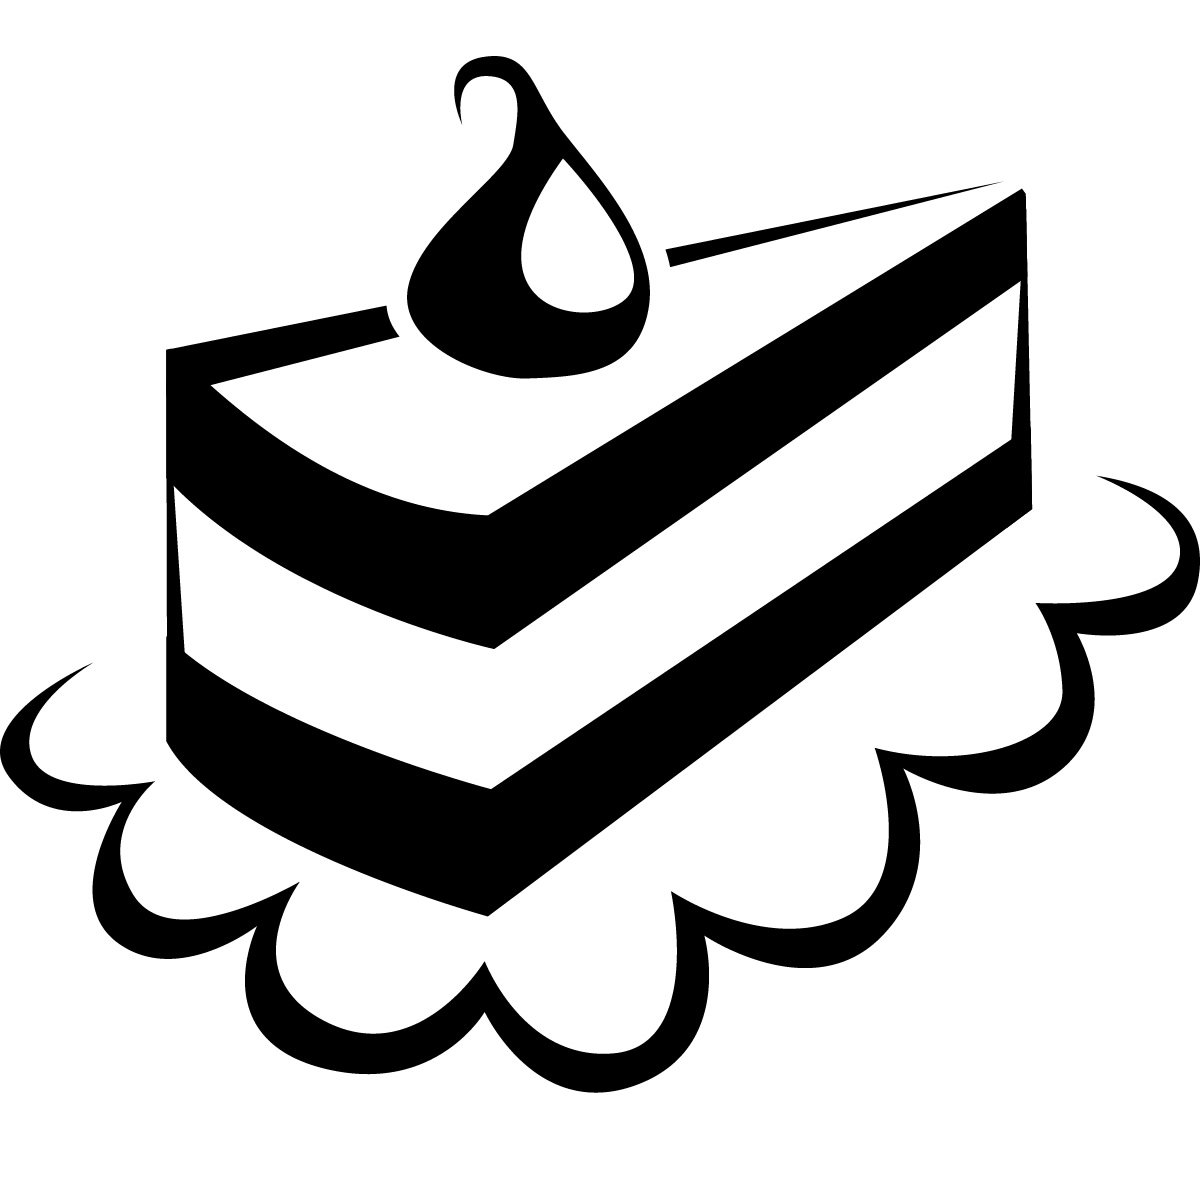 Slice of cake black and white clipart image freeuse stock Cake black and white free to use and share cake clipart for your ... image freeuse stock